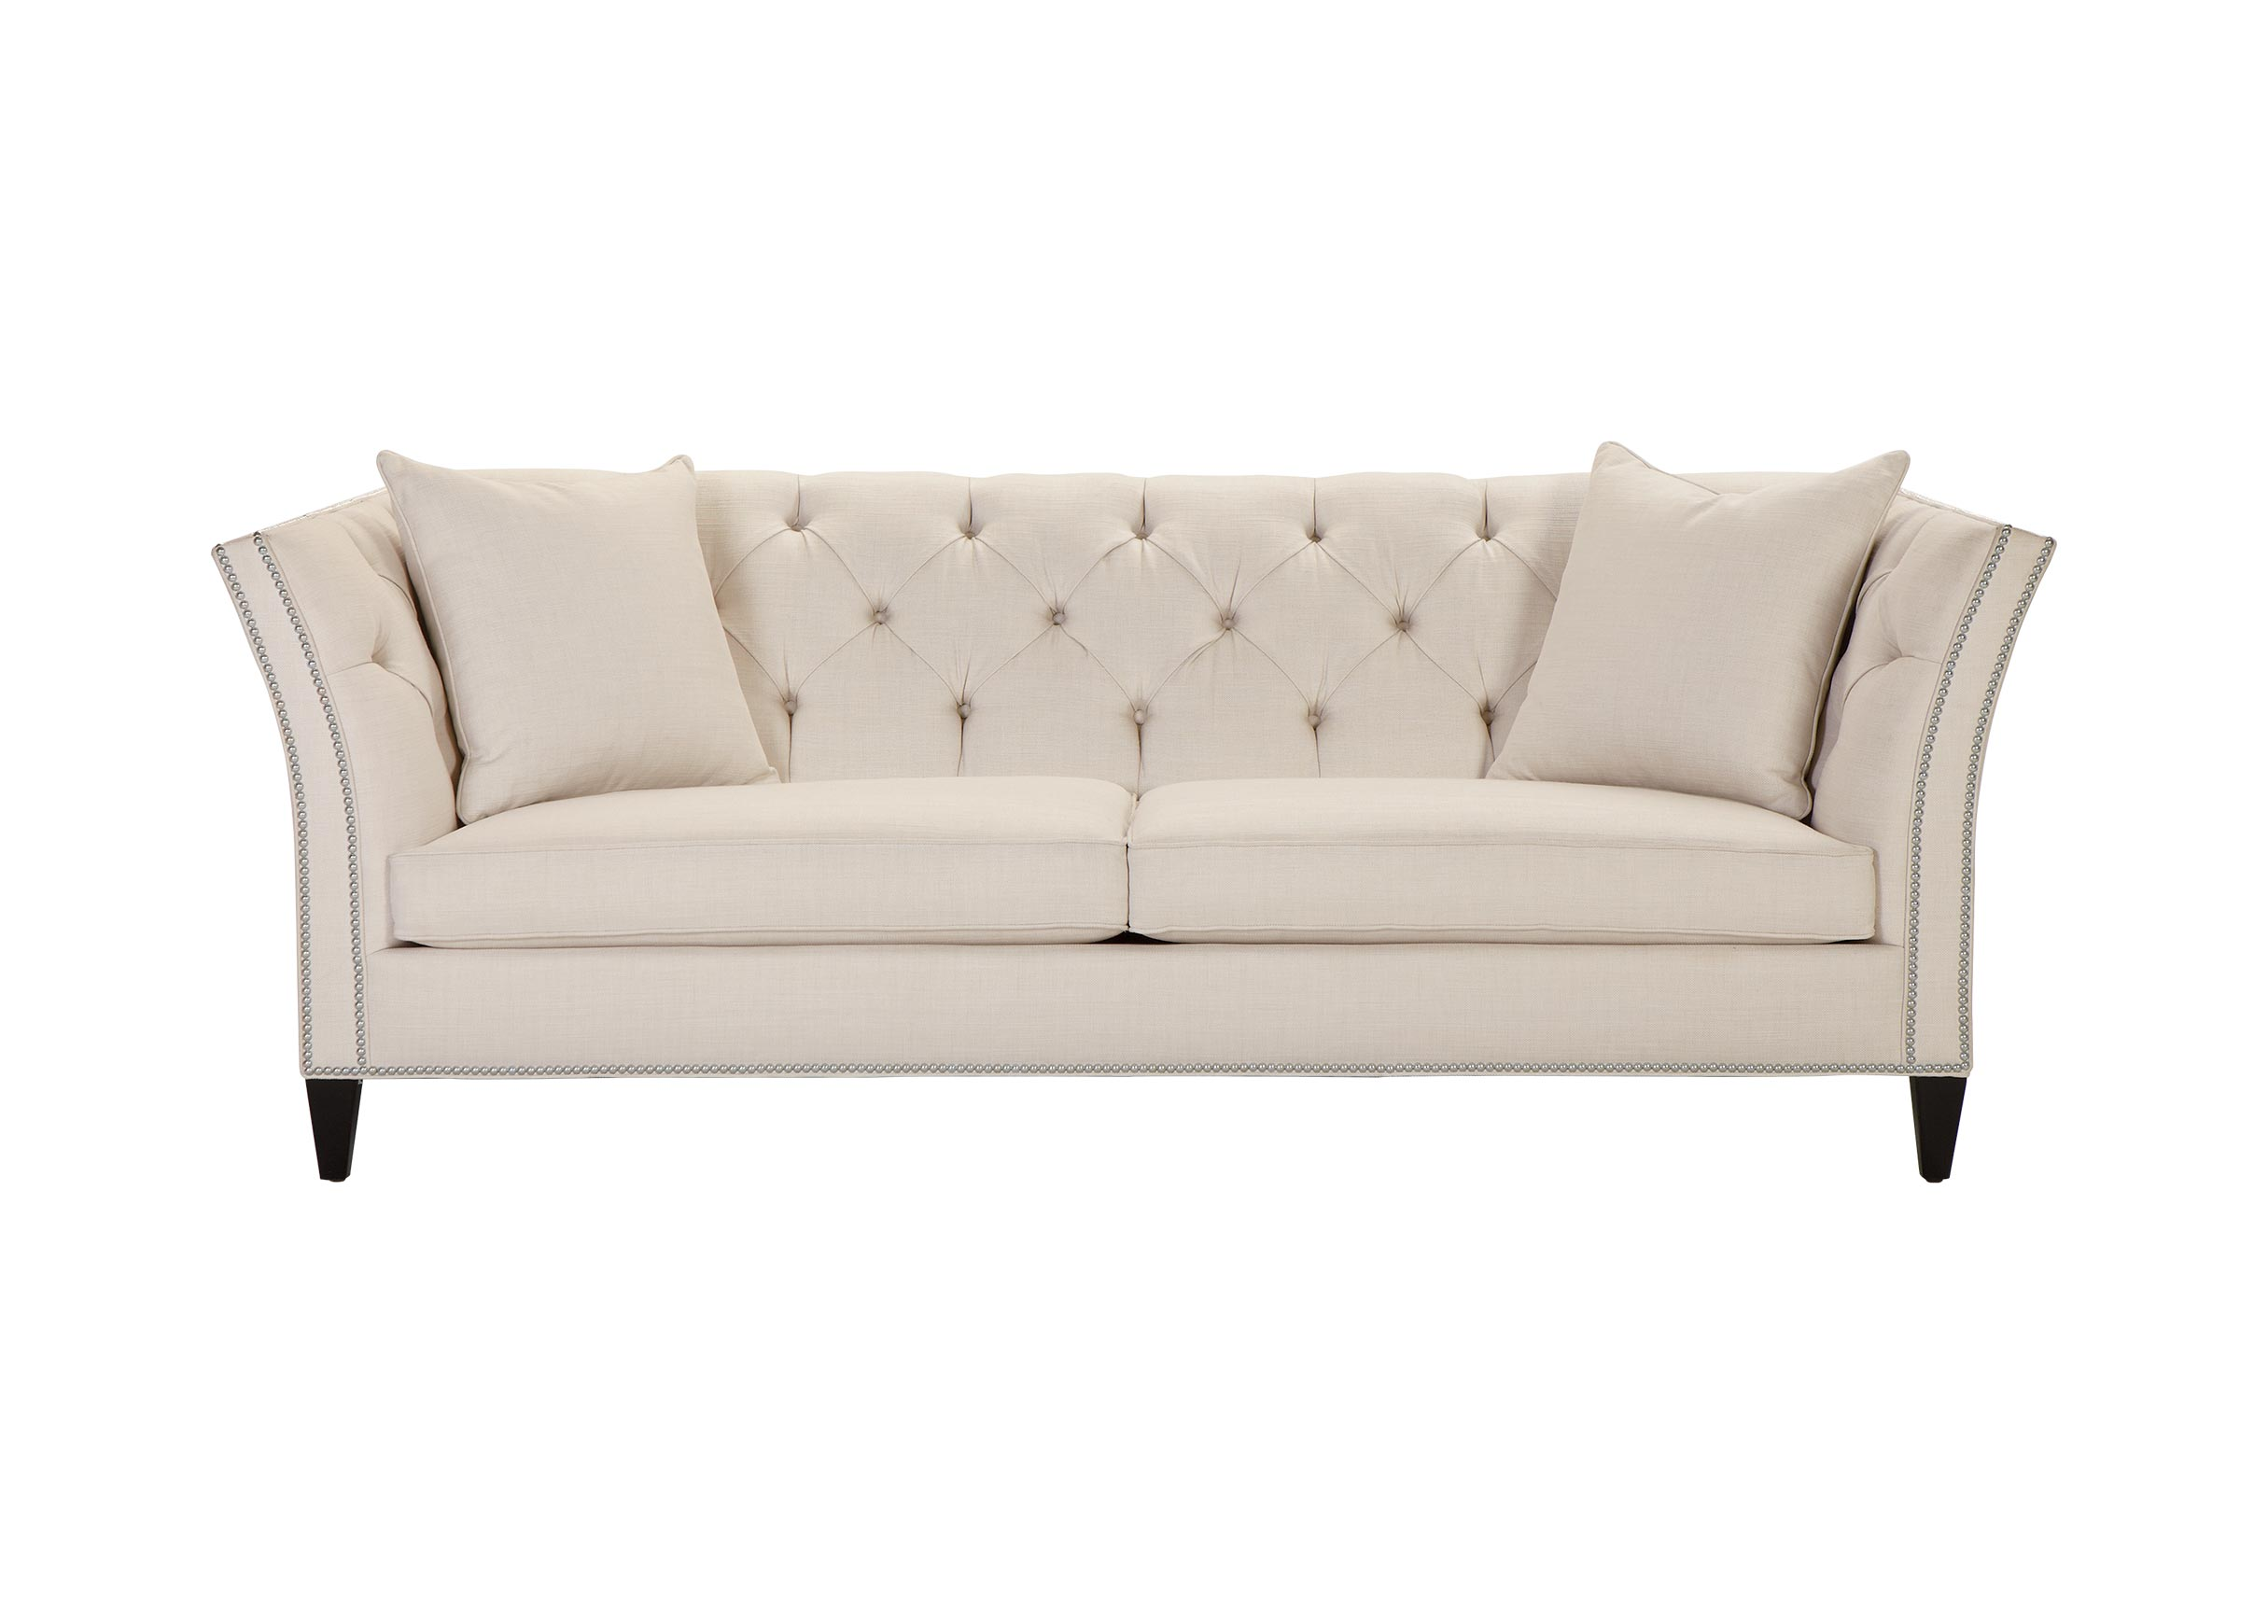 Shelton sofa sofas loveseats Couches and loveseats